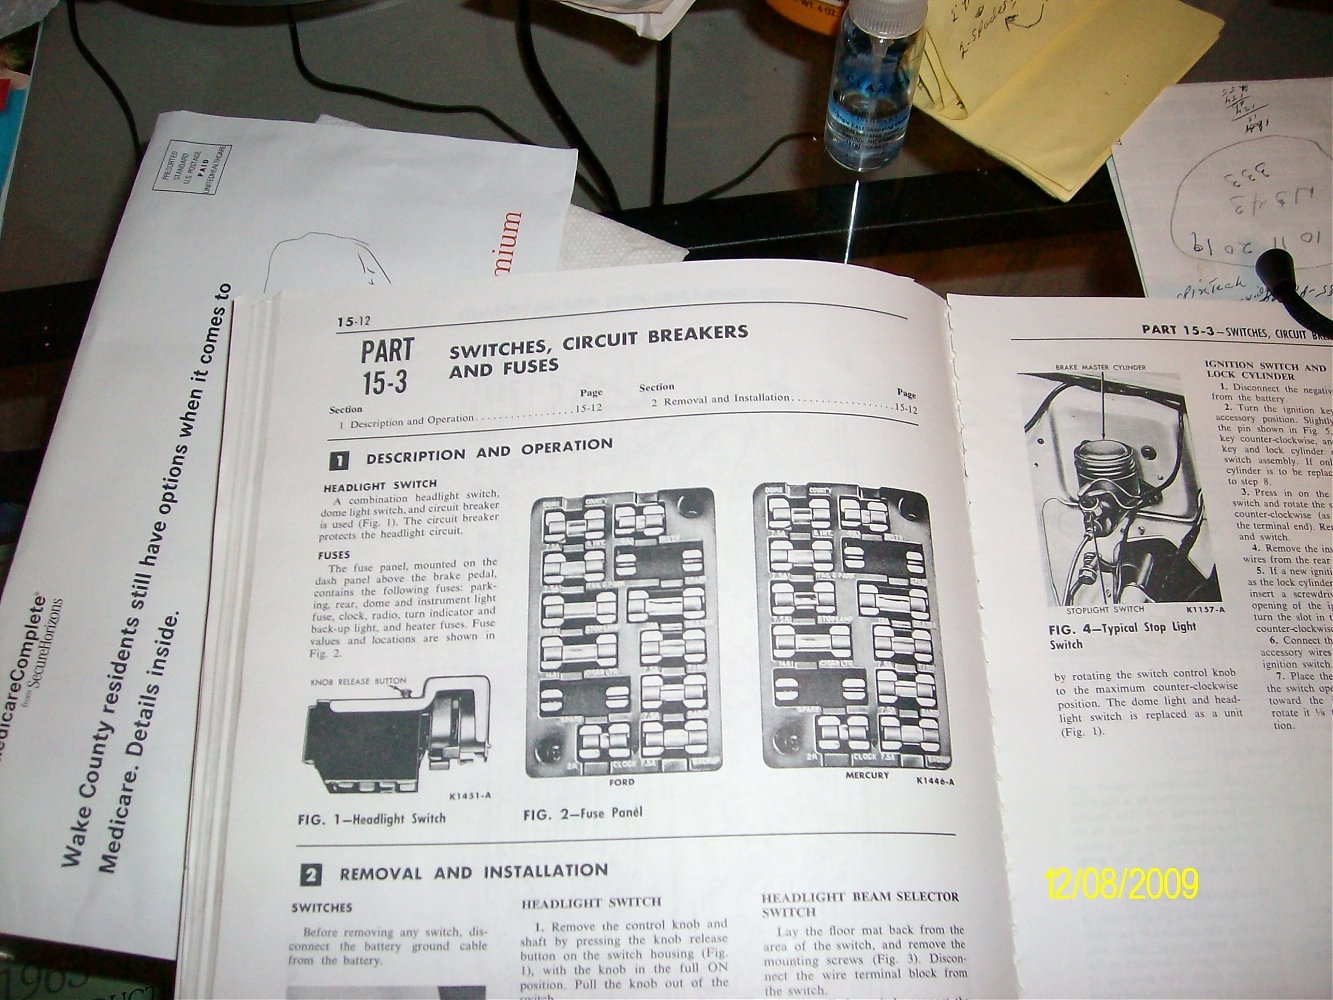 bf falcon stereo wiring diagram western golf cart 42 volt fuse box layout for my 3963 ford muscle forums